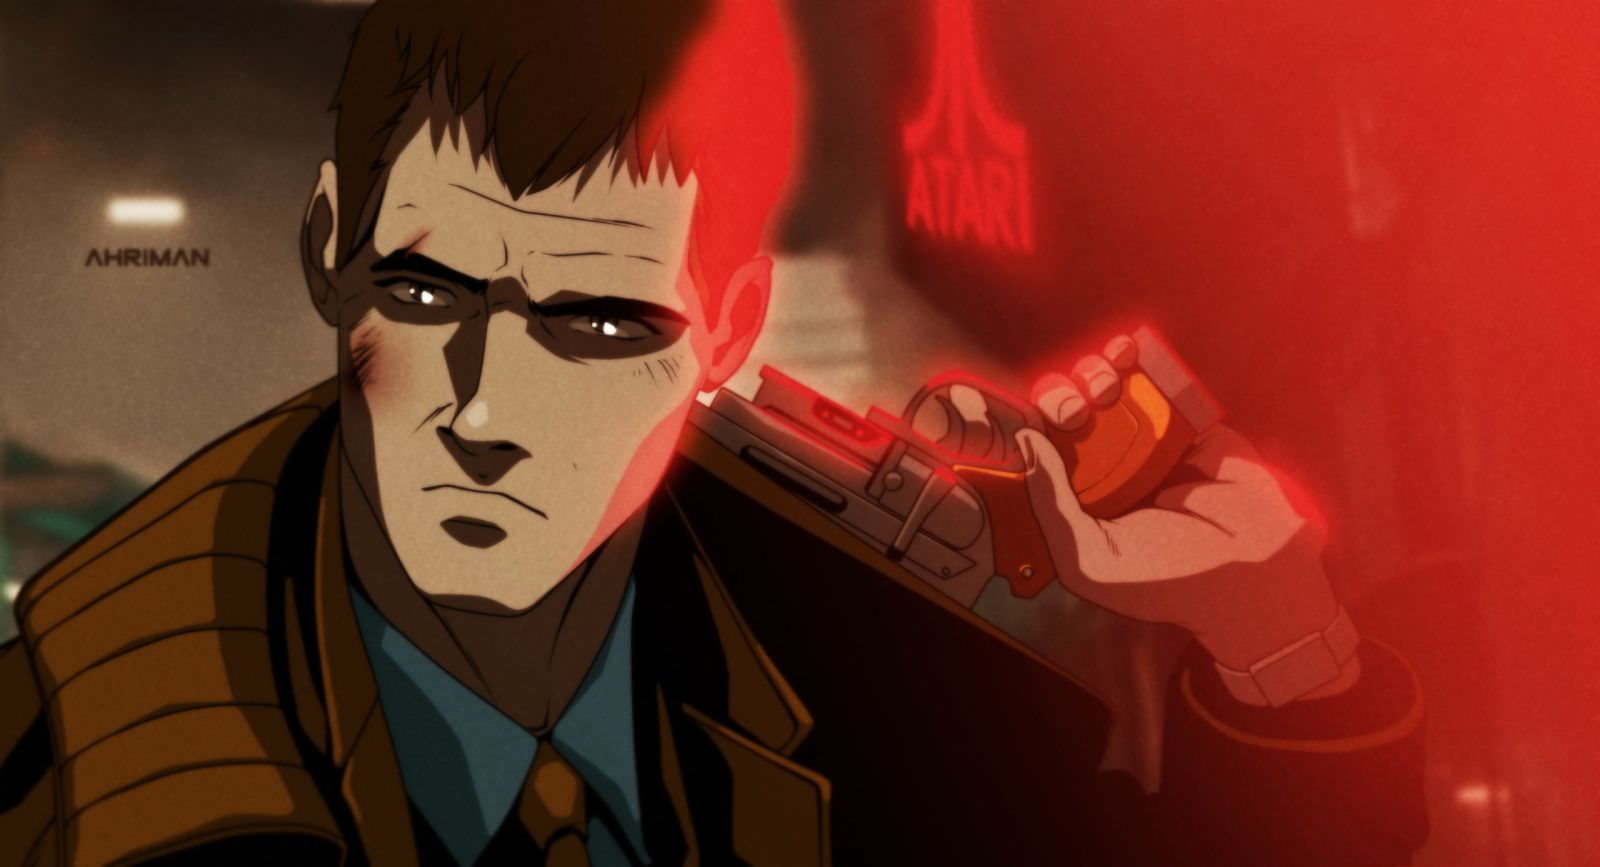 Ahriman BLADE RUNNER 2 - Must-See Art: Ahriman Turns Classic Flicks Into Anime!